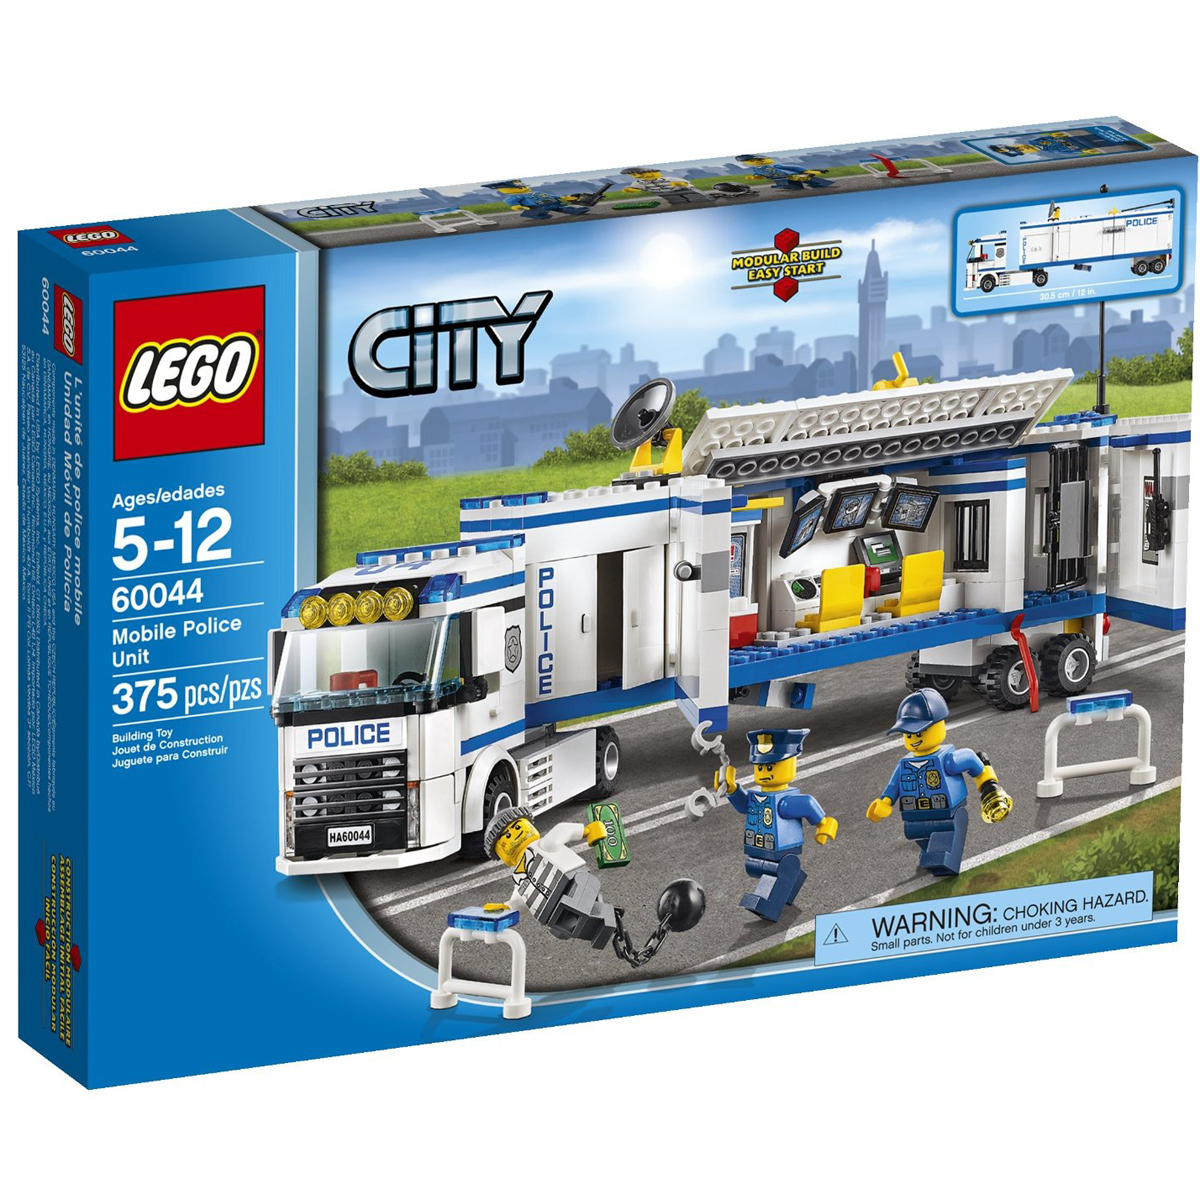 Lego City 60044 - Doi canh sat thong tin